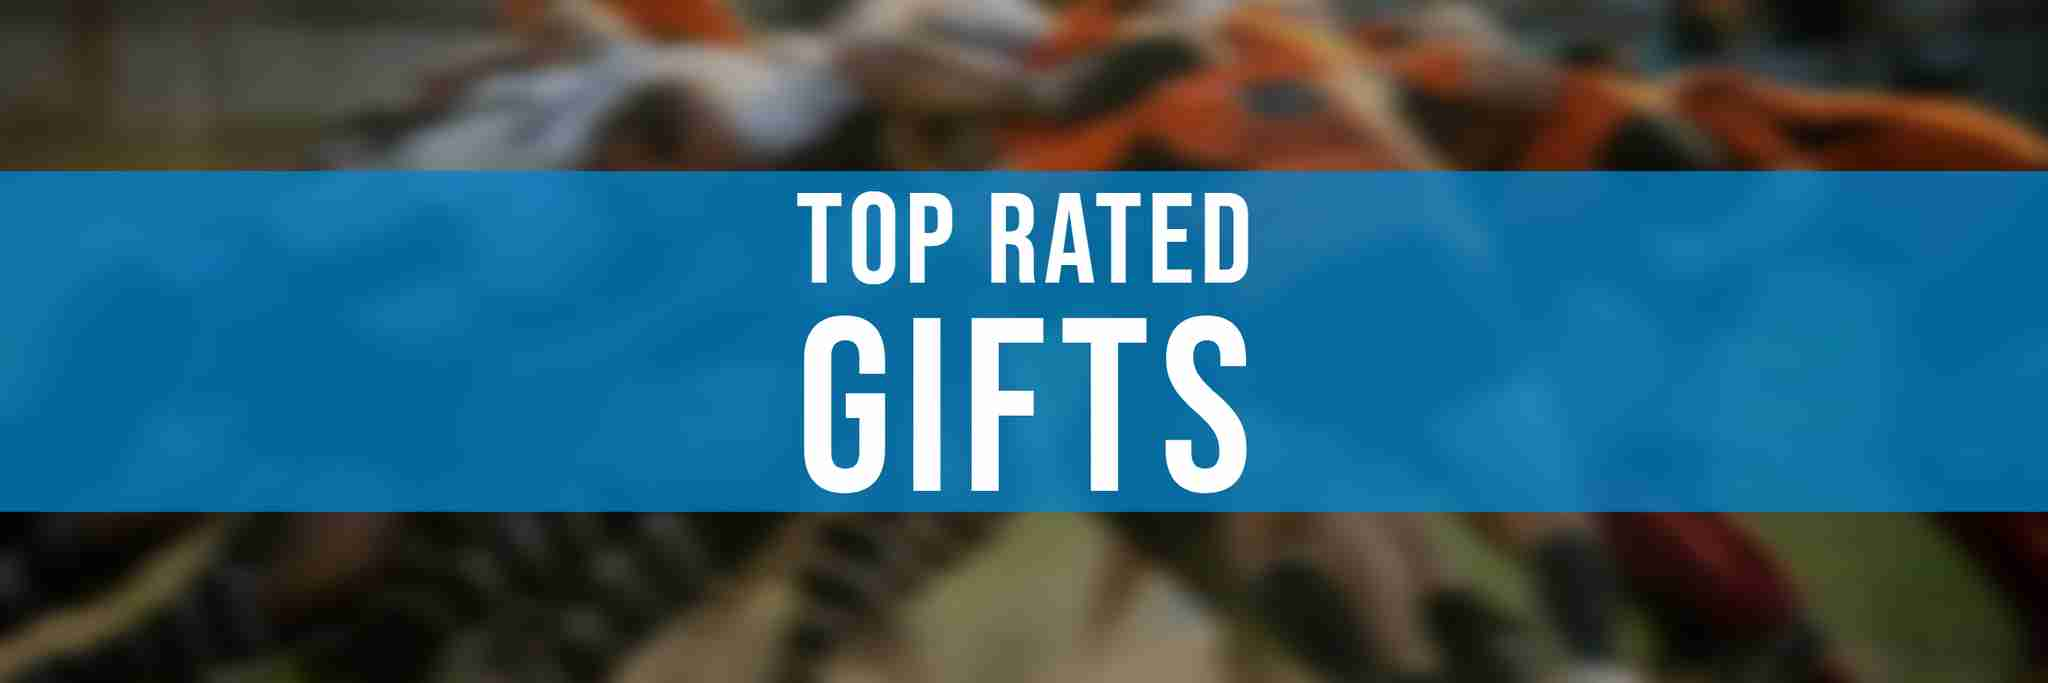 Ruggers Rugby Top Rated Gifts